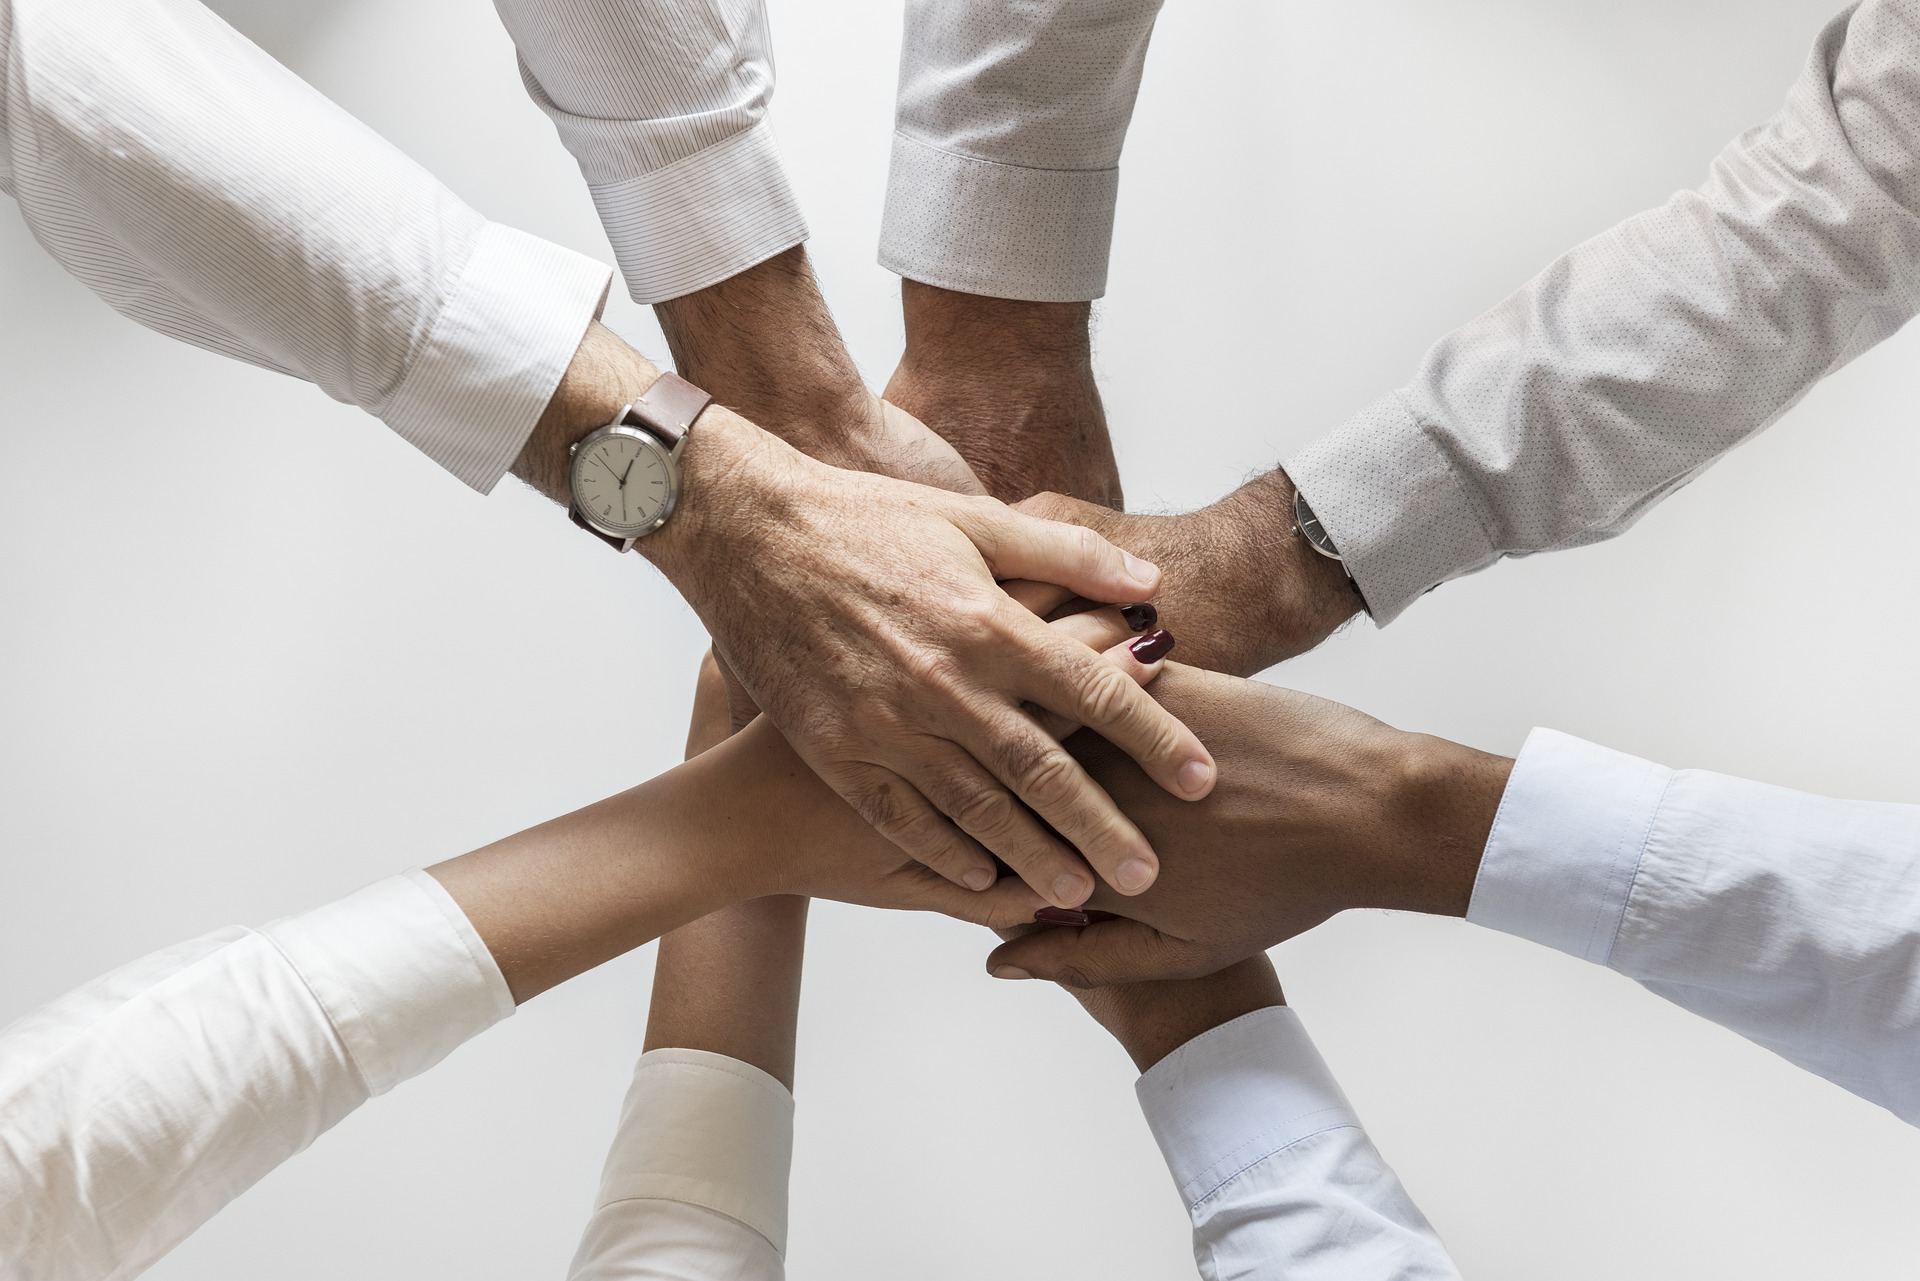 team+handshake+photo+for+great+customer+service+for+Telecoms+and+IT+in+Gloucestershire.jpg